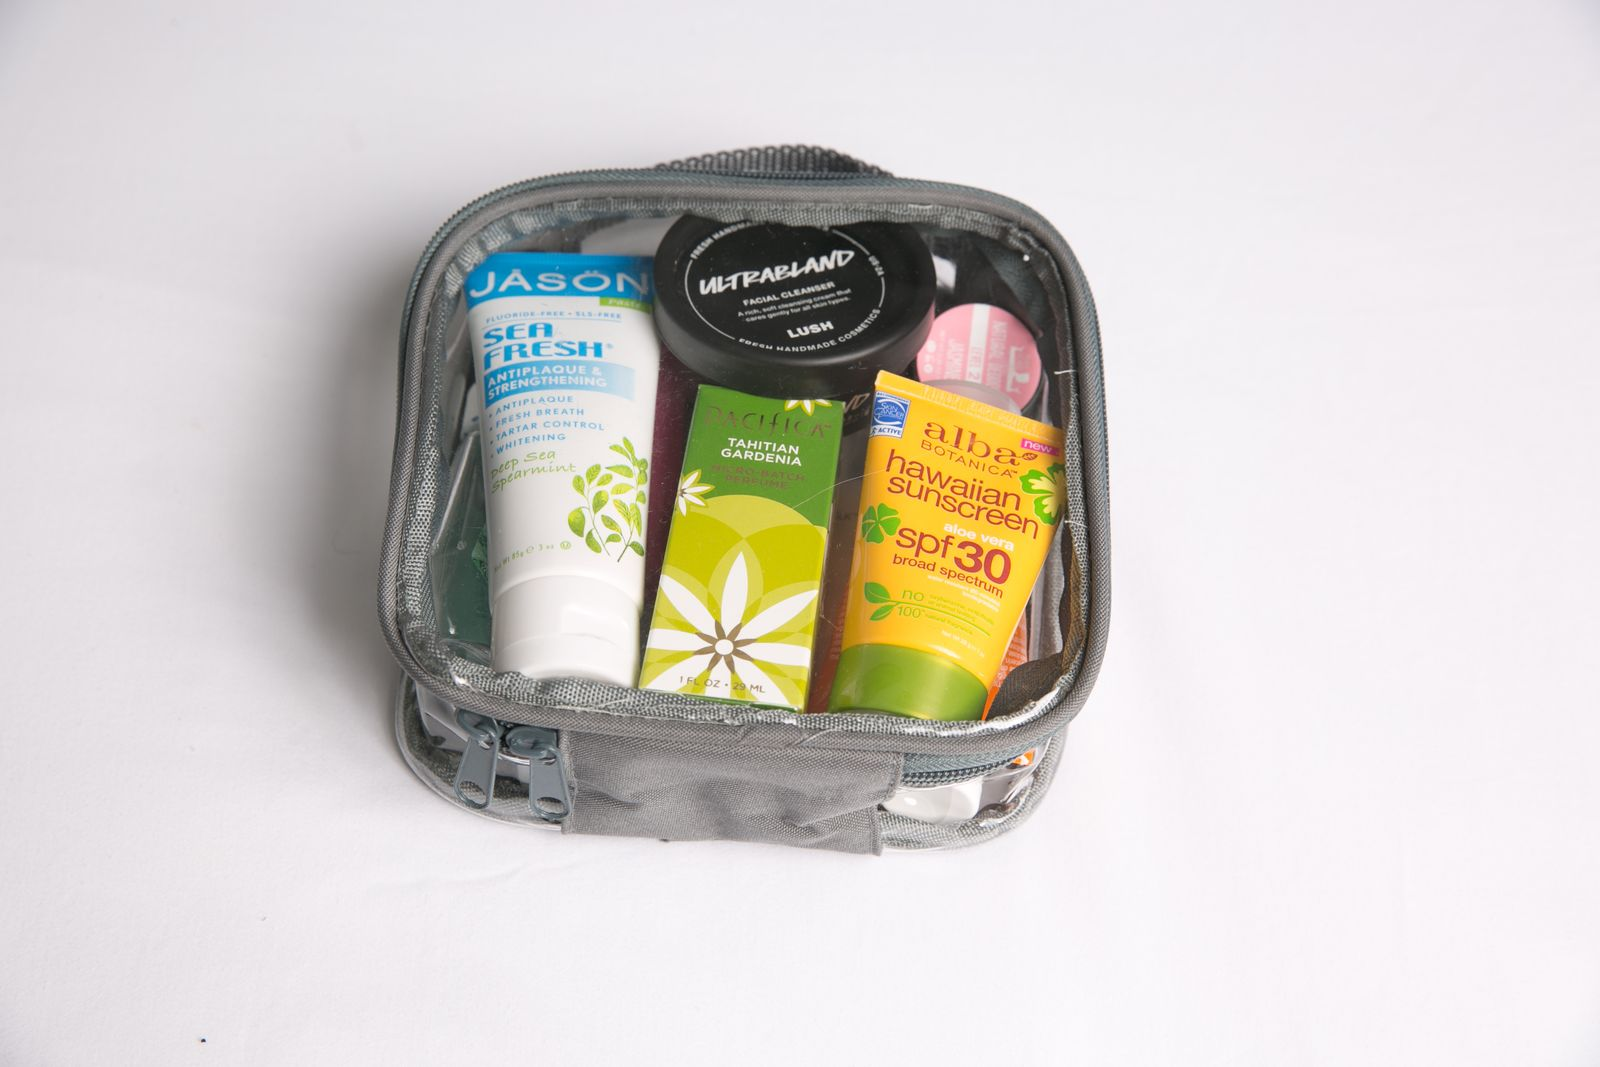 Hygiene essentials in a gray extra small cube